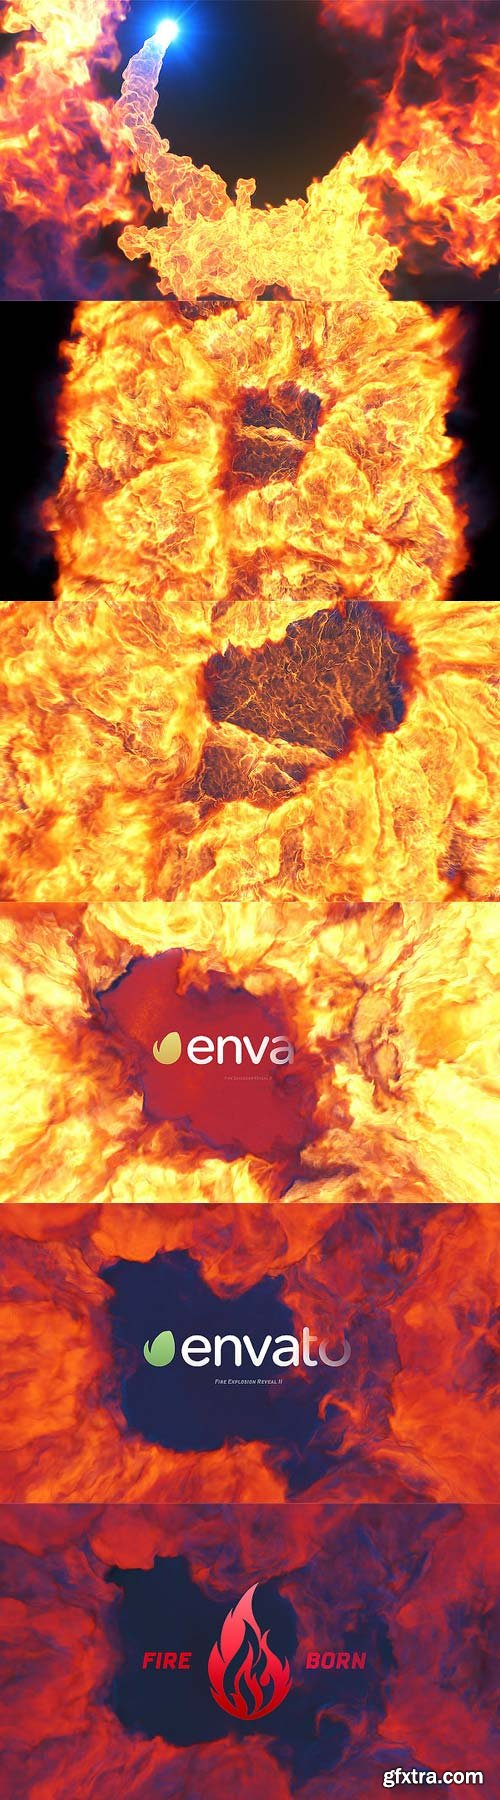 Videohive - Fire Explosion Logo Reveal II - 12493184